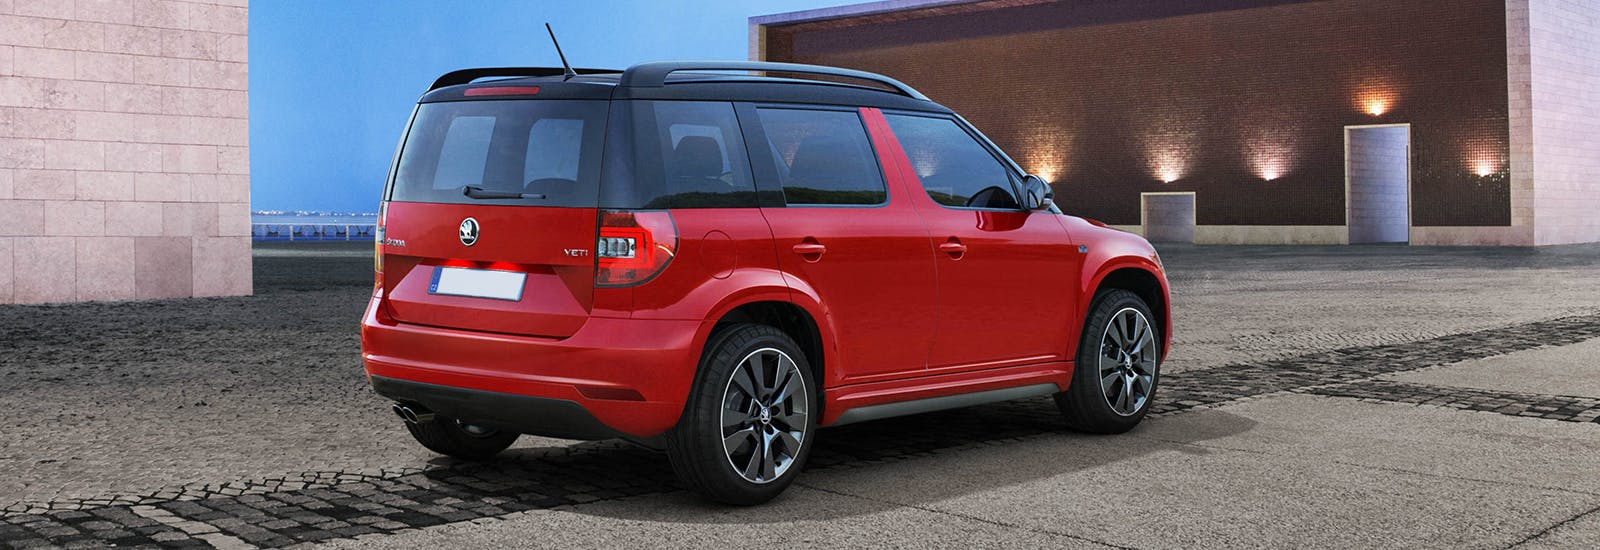 skoda yeti monte carlo trim expanded guide carwow. Black Bedroom Furniture Sets. Home Design Ideas